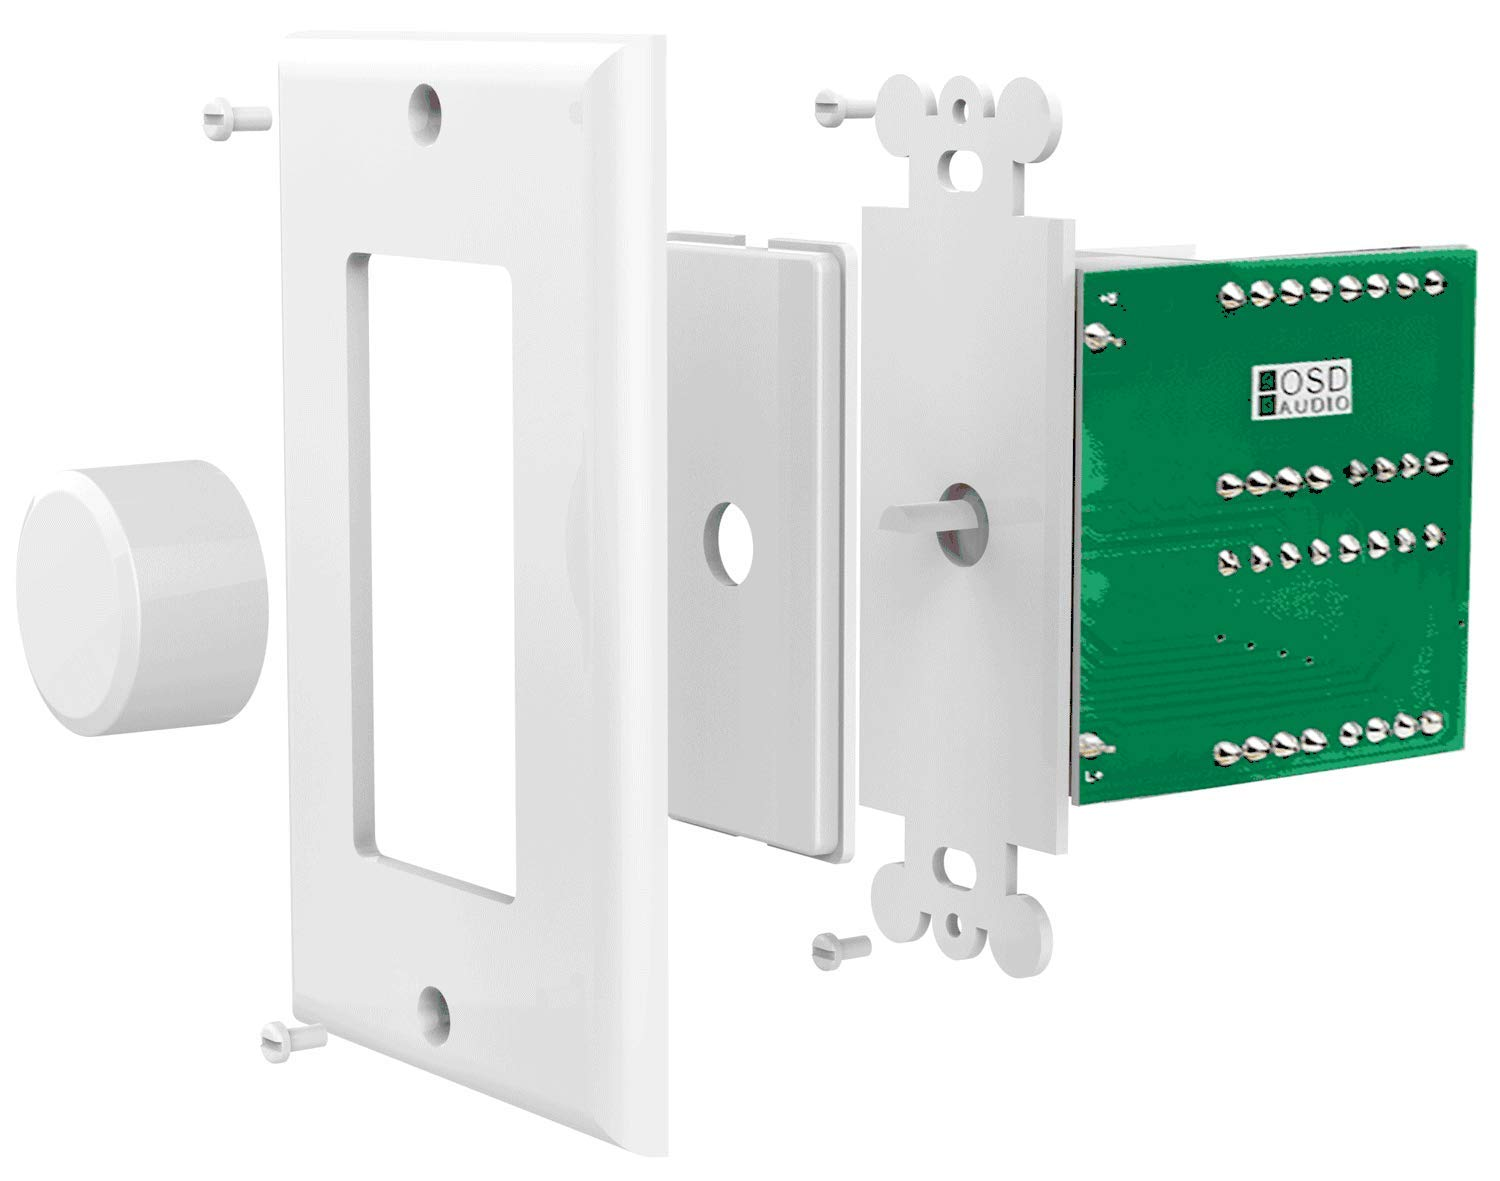 Svc100 Impedance Matching 100w In Wall Rotary Knob Style Amazoncom Pyle Home Pvcs5 Inwall A B Speaker Source Switch Theater Volume Control Switchable Decora Plates Osd Audio White